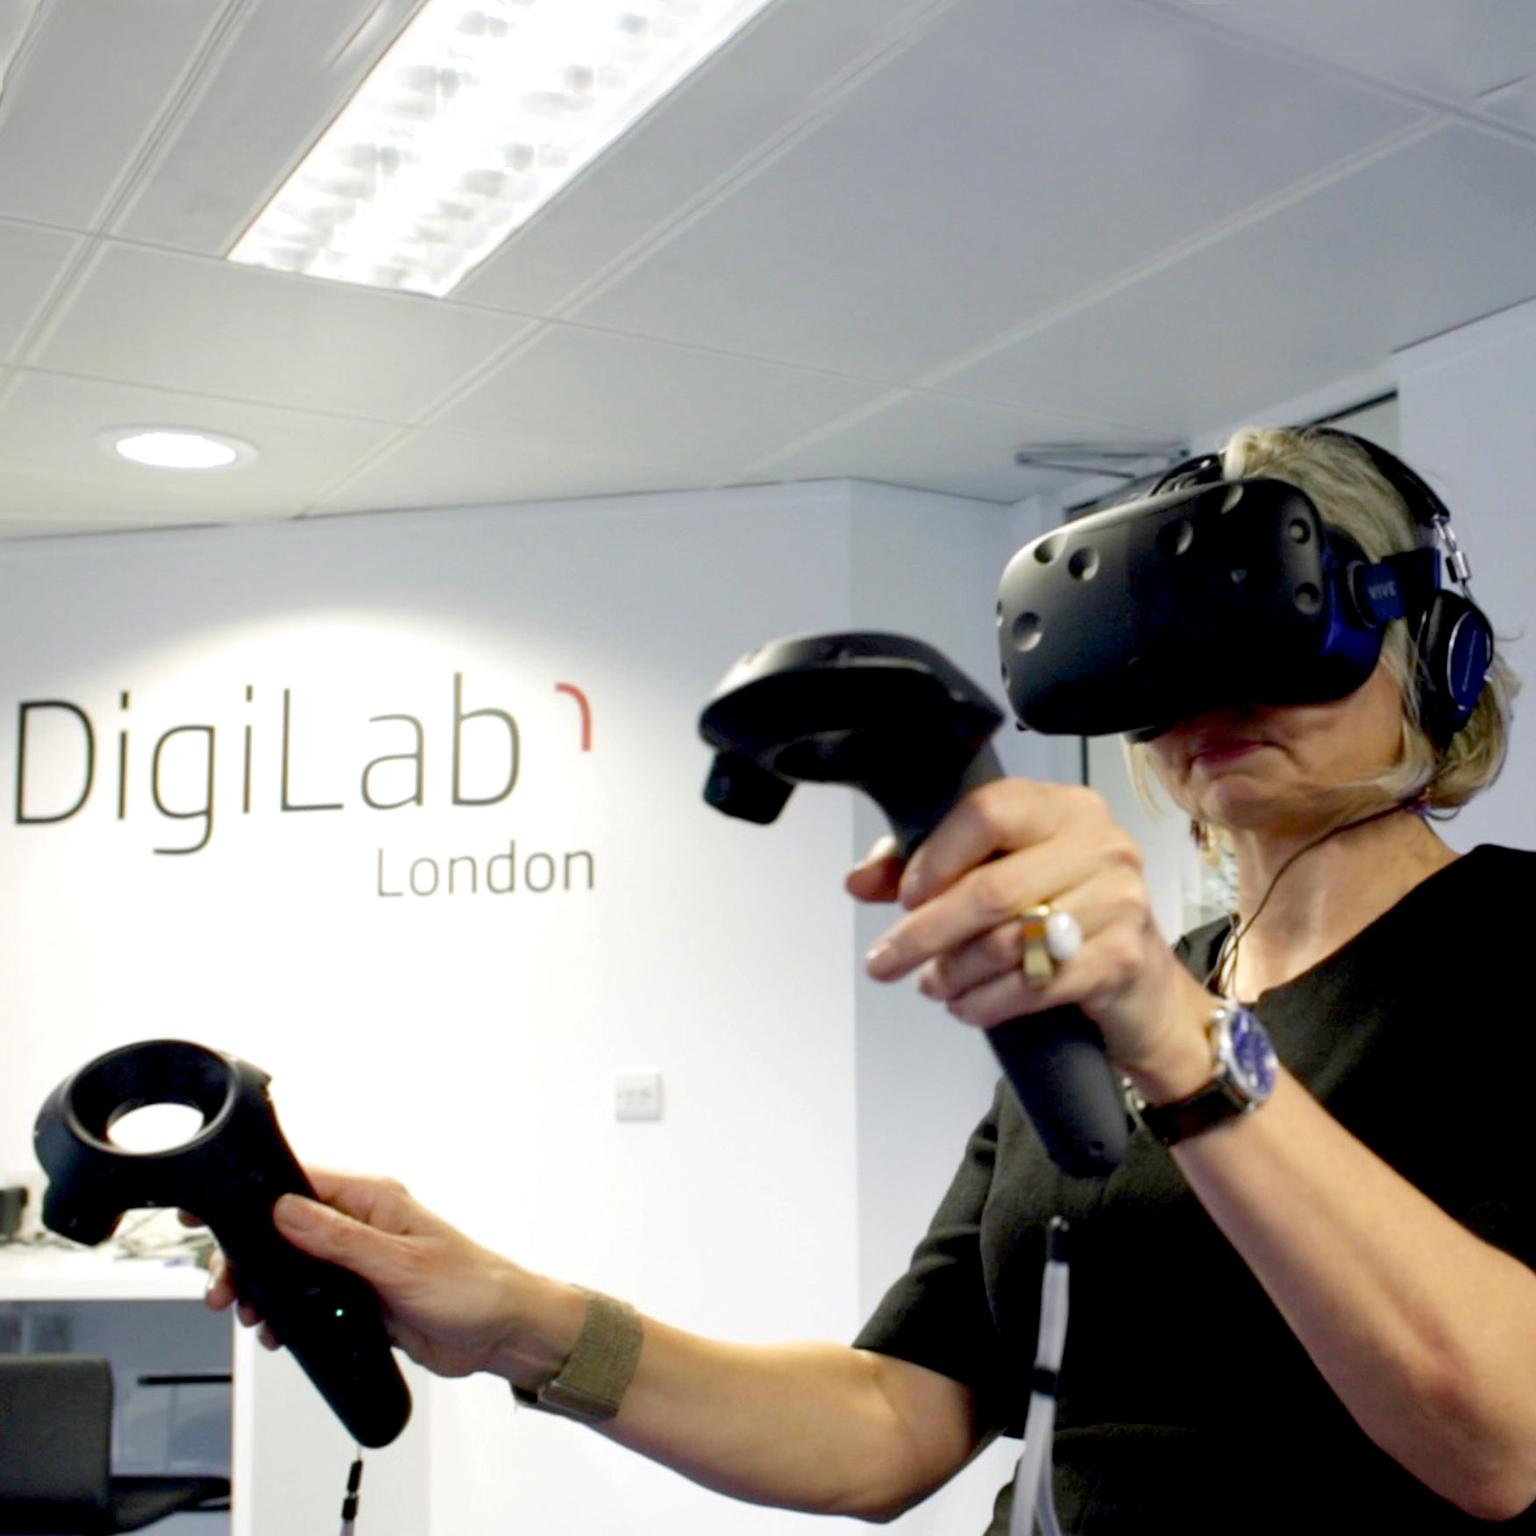 Maria wearing Virtual Reality headset